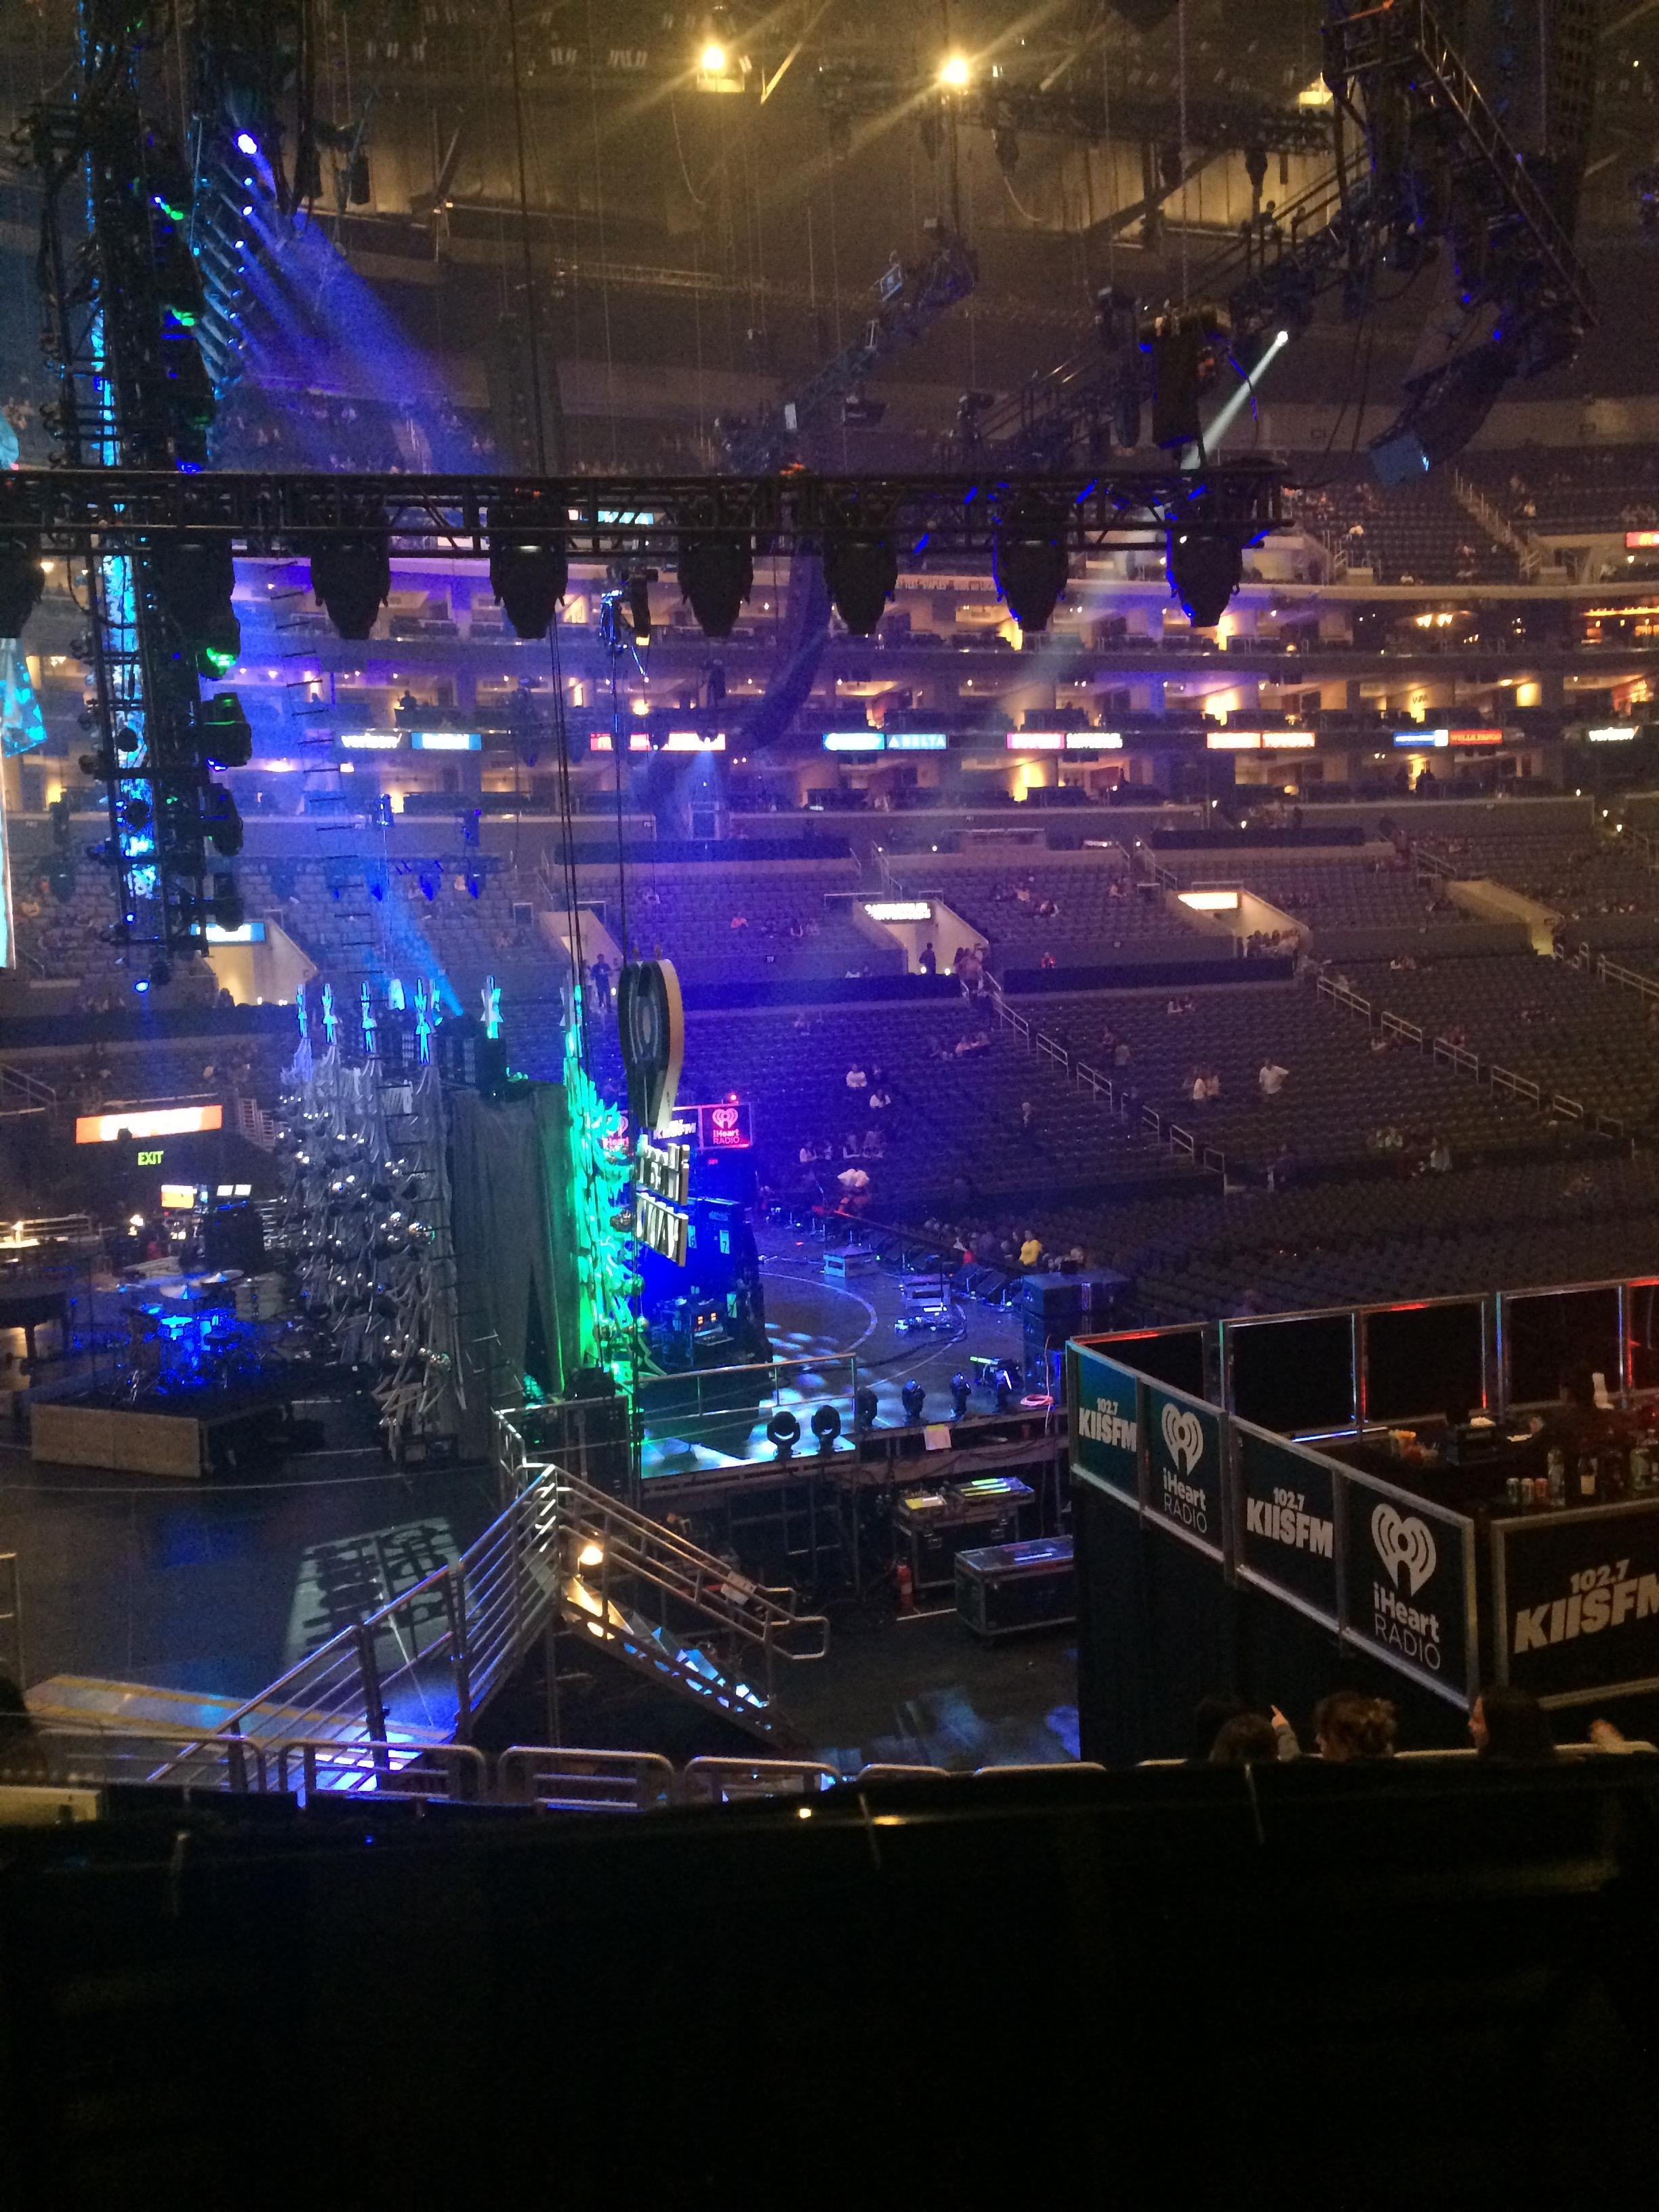 Staples Center Section 114 Row 18W Seat 5